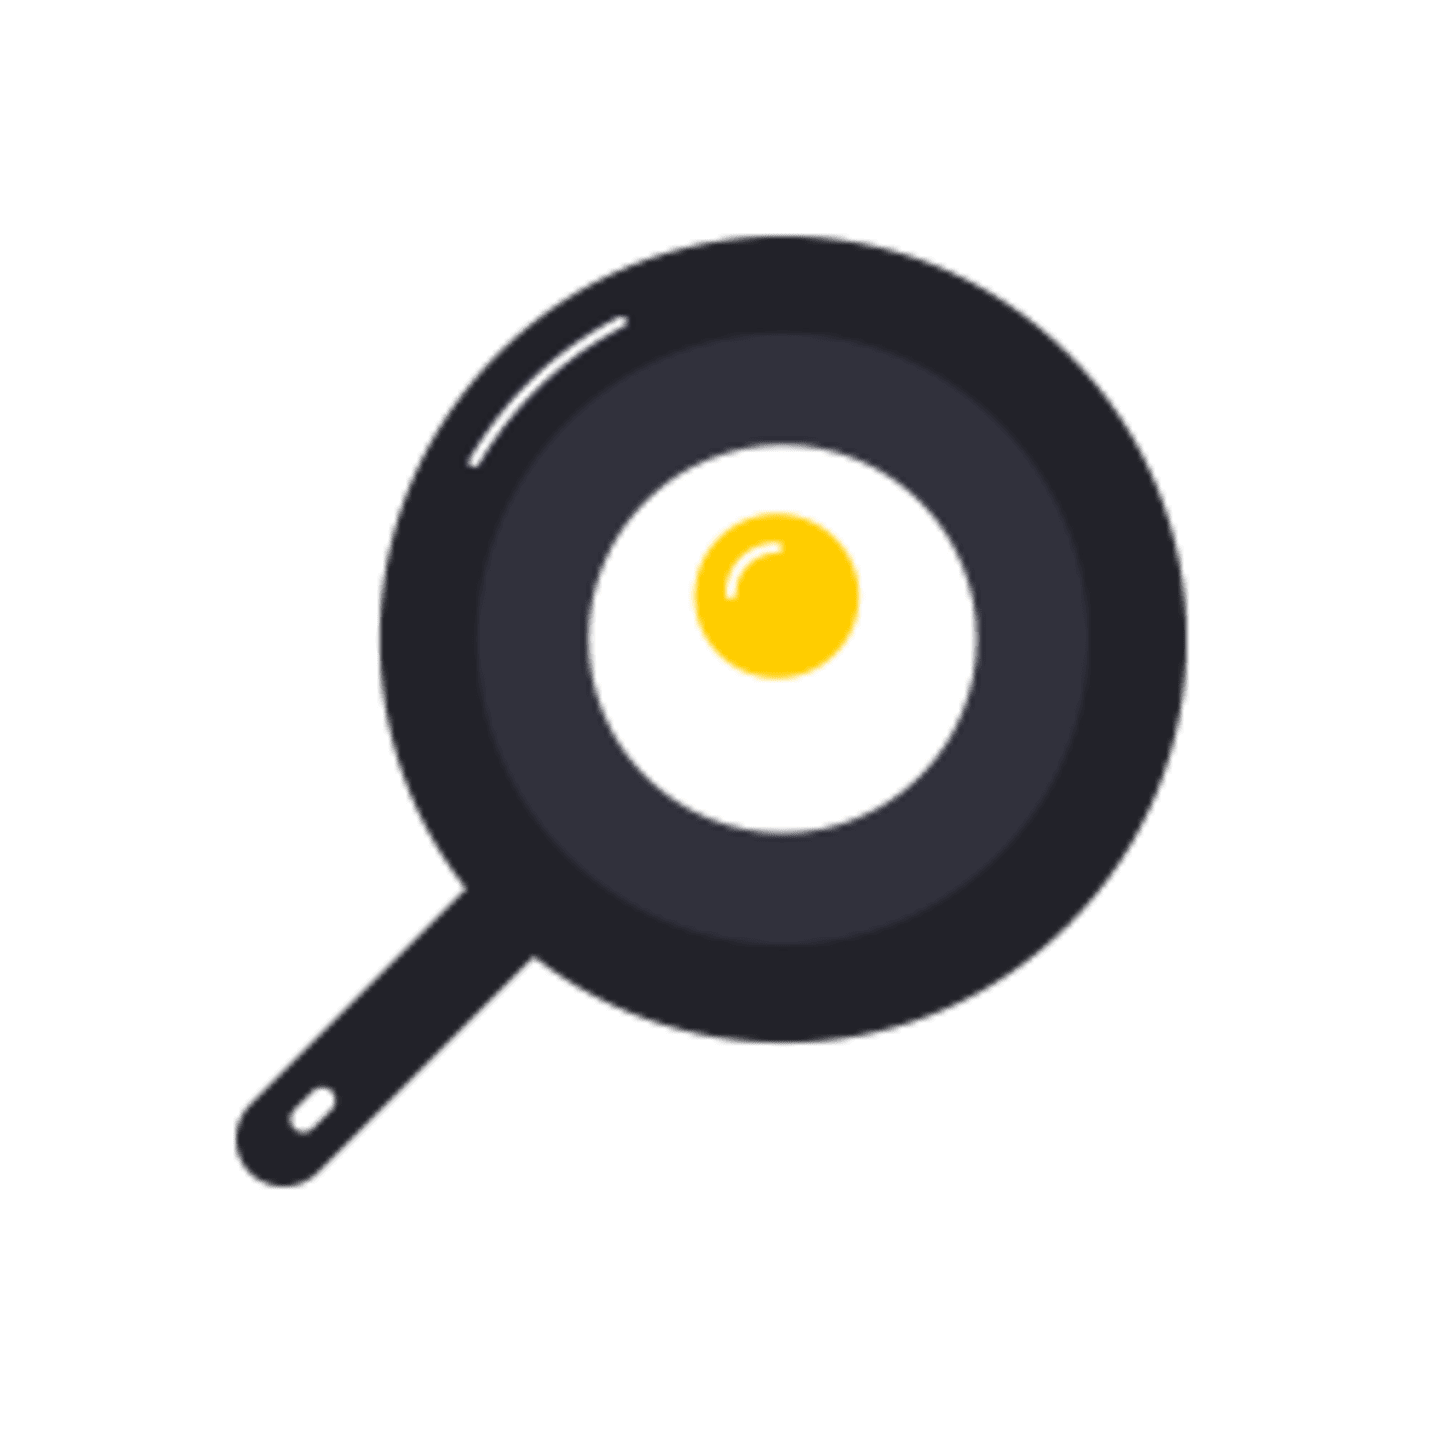 non-stick-icon